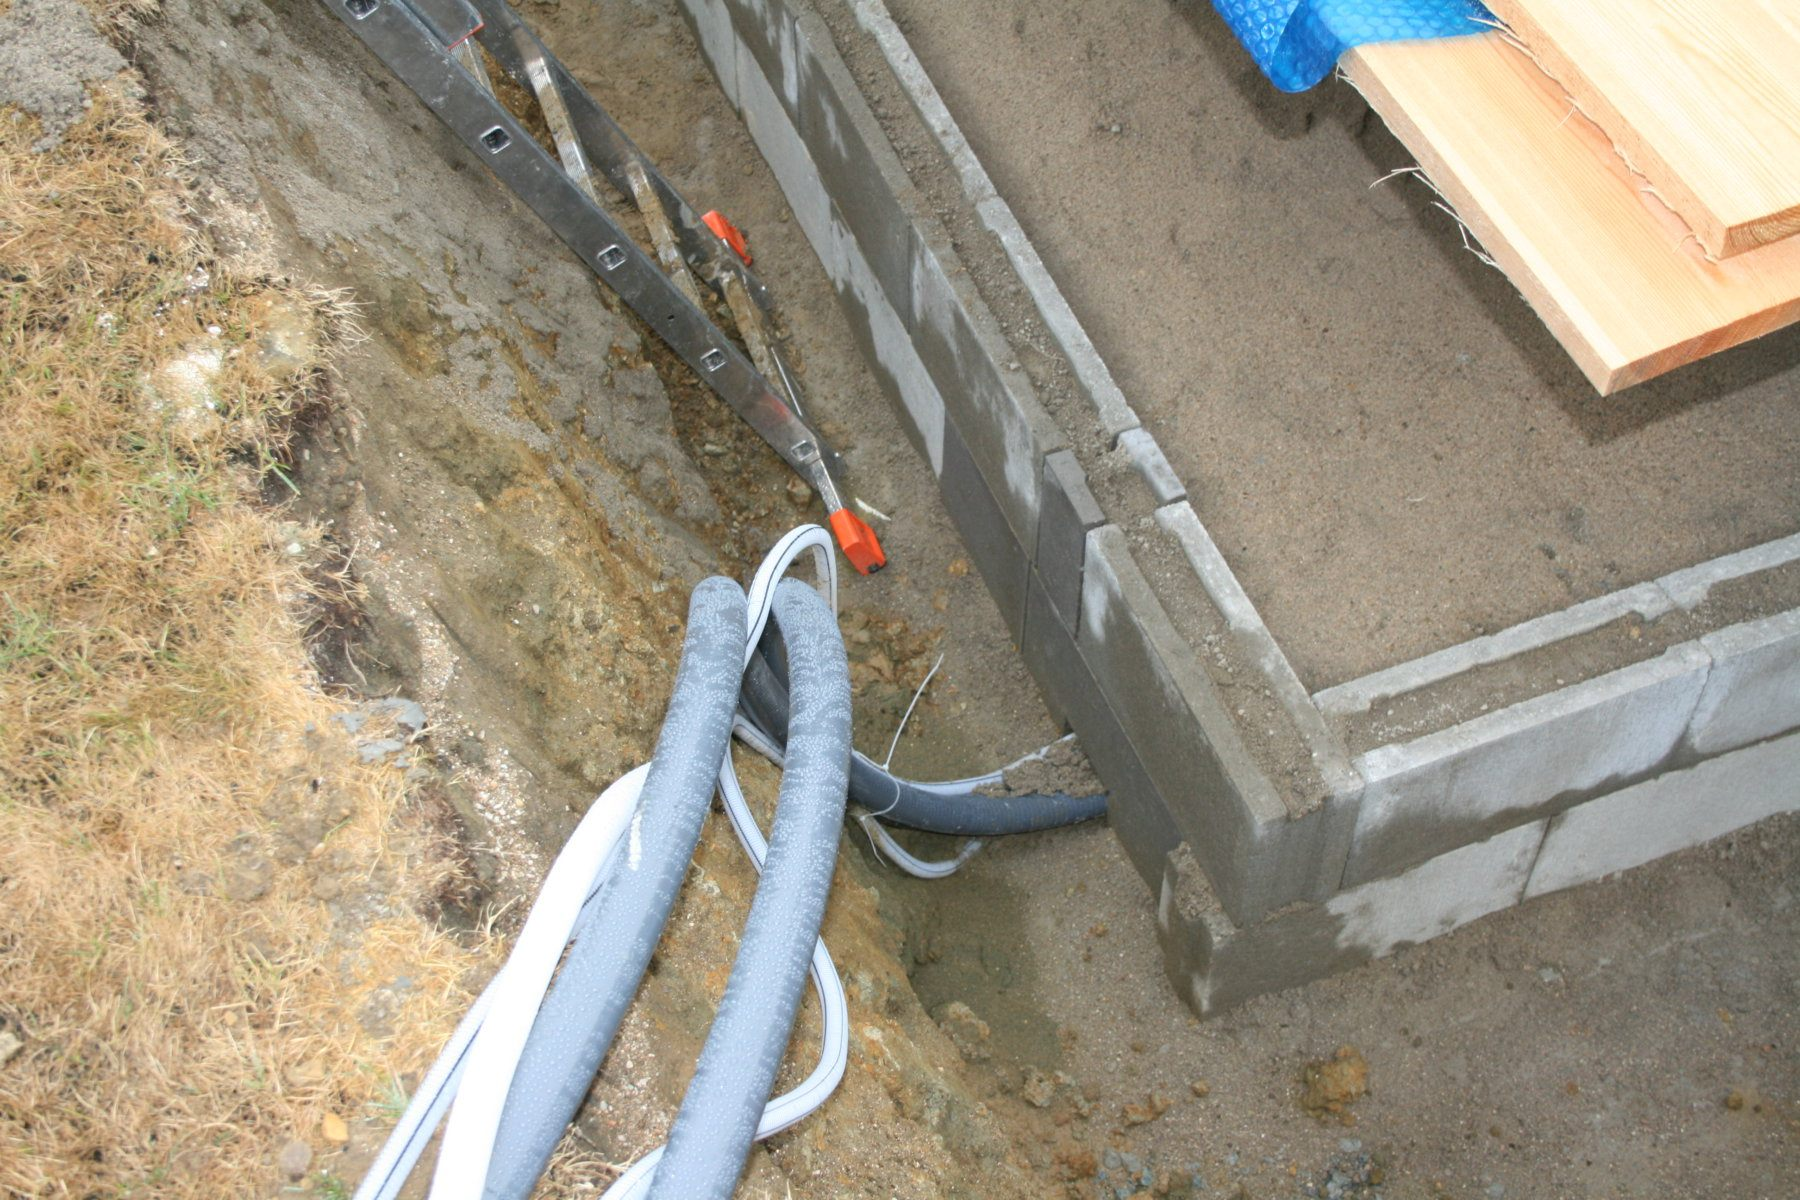 Ceramic pool installation and backfilling by dry concrete mixture